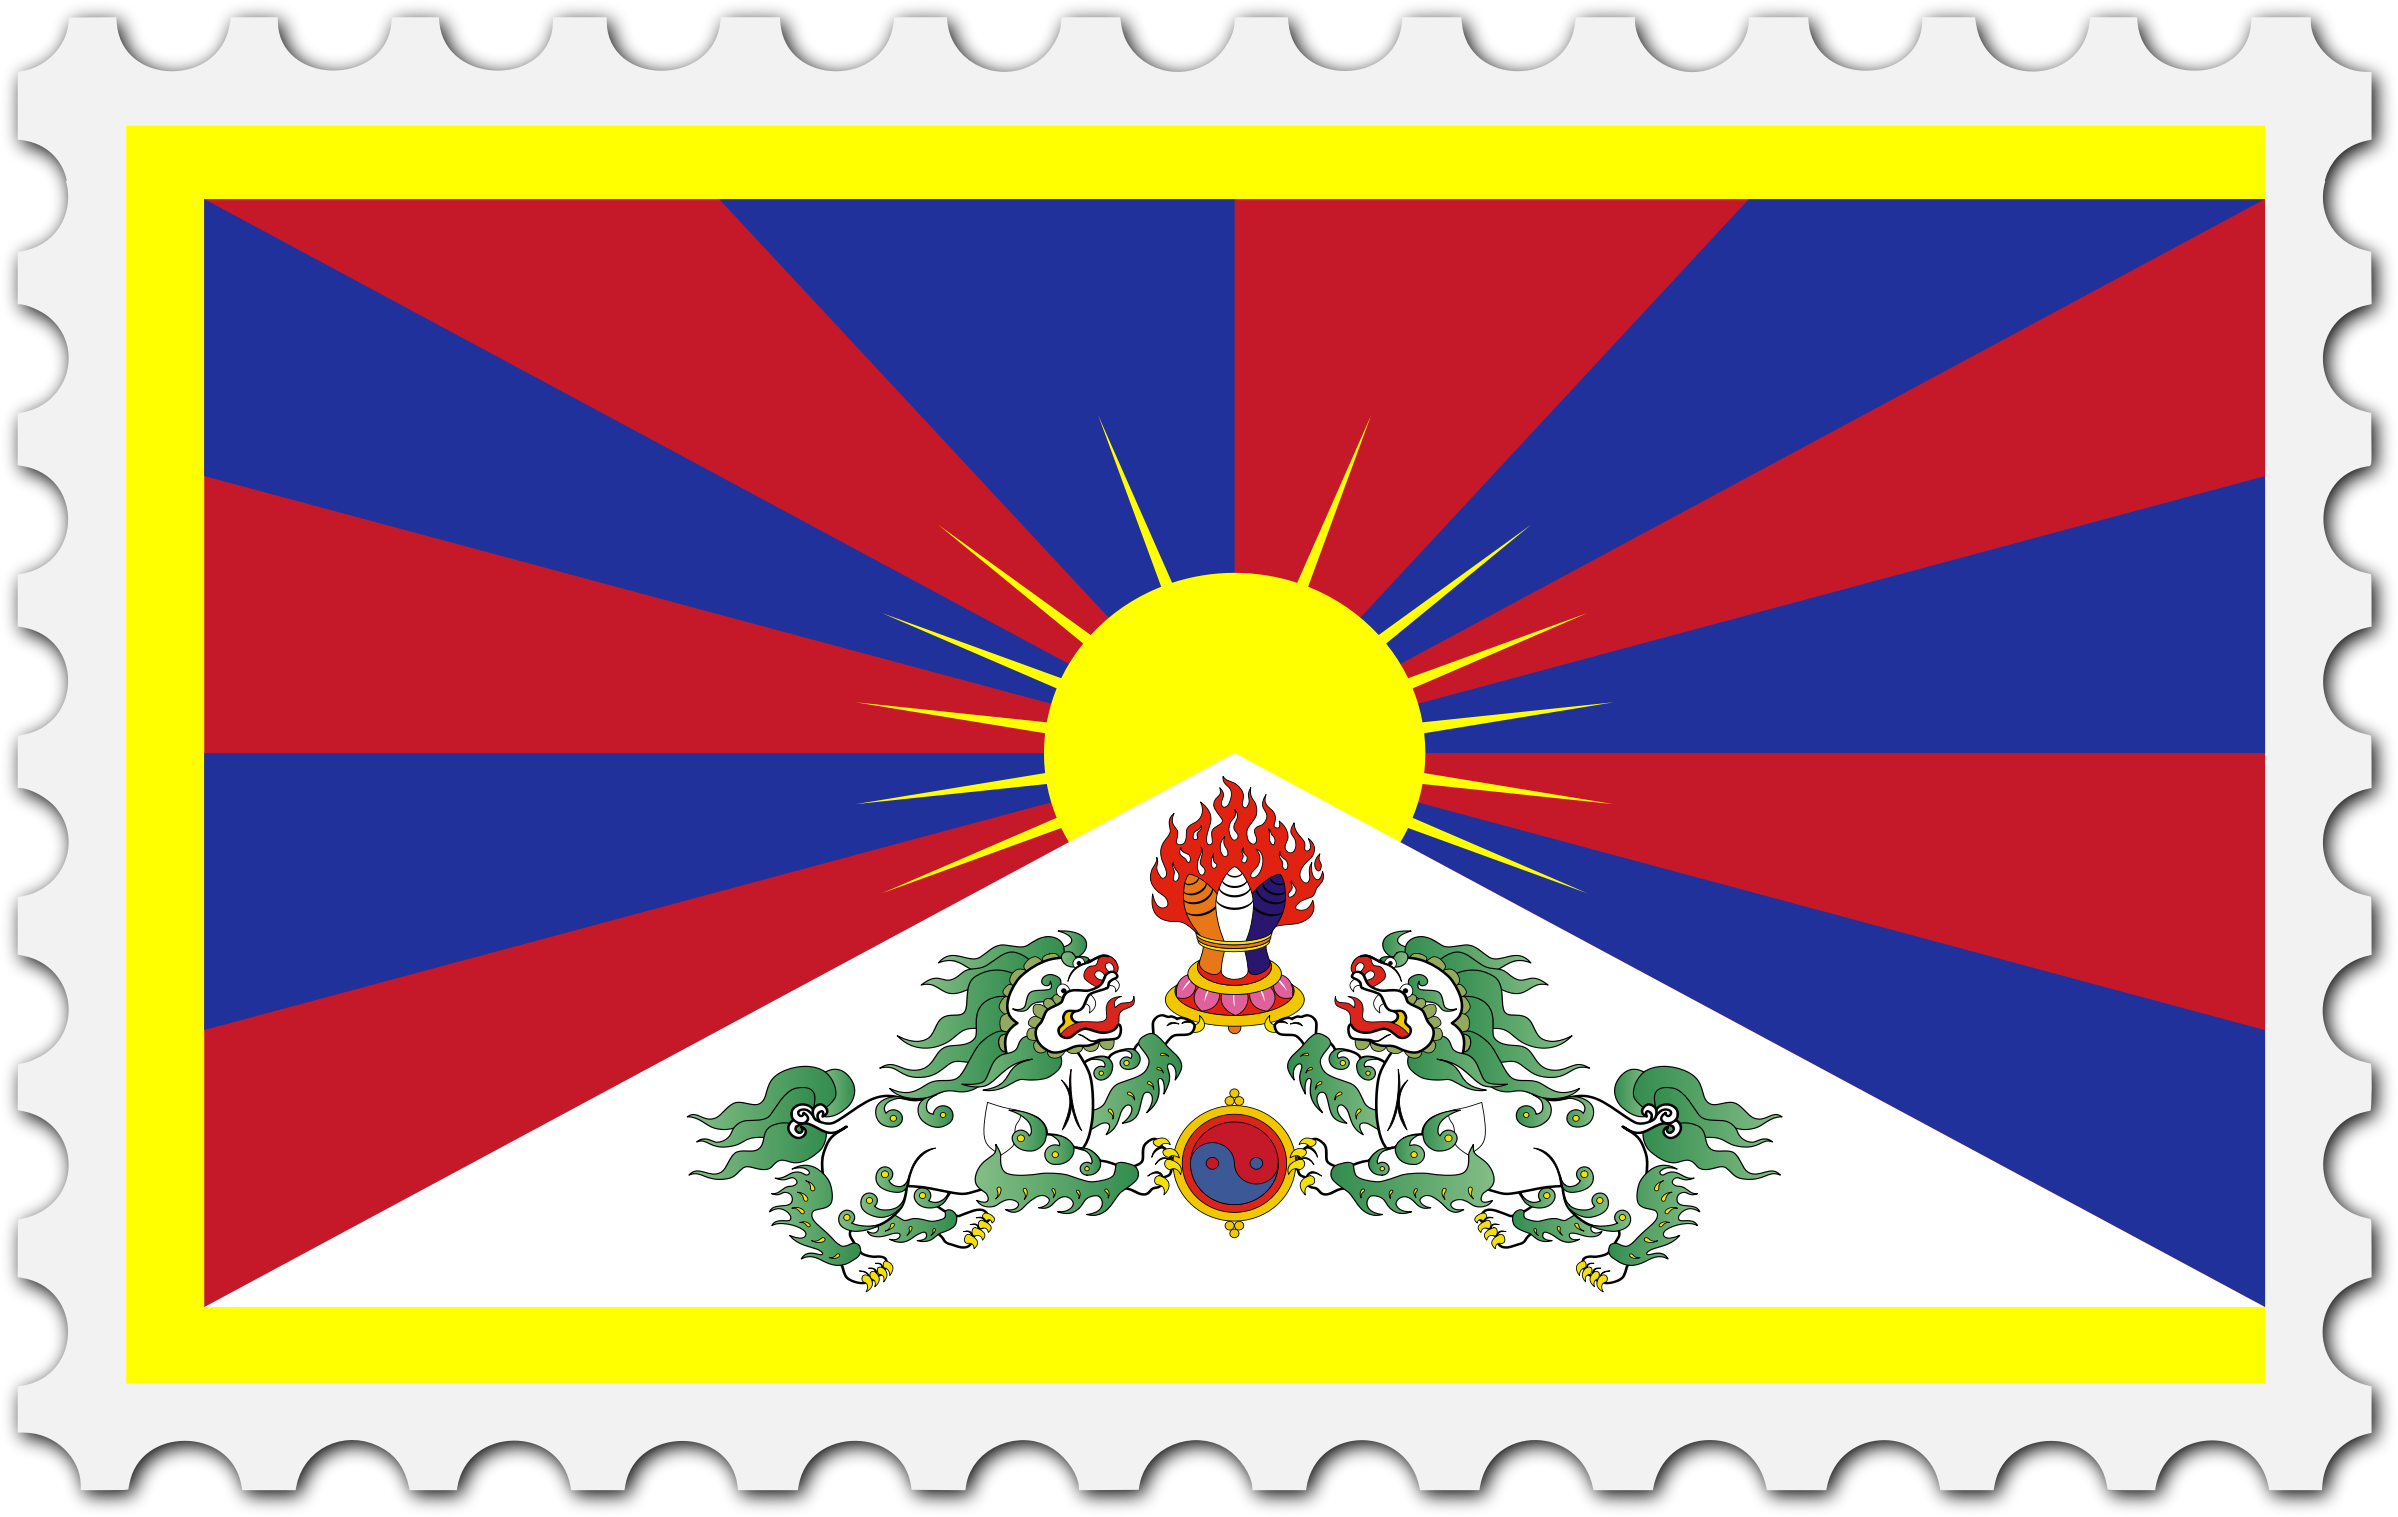 Tibet flag stamp by Firkin